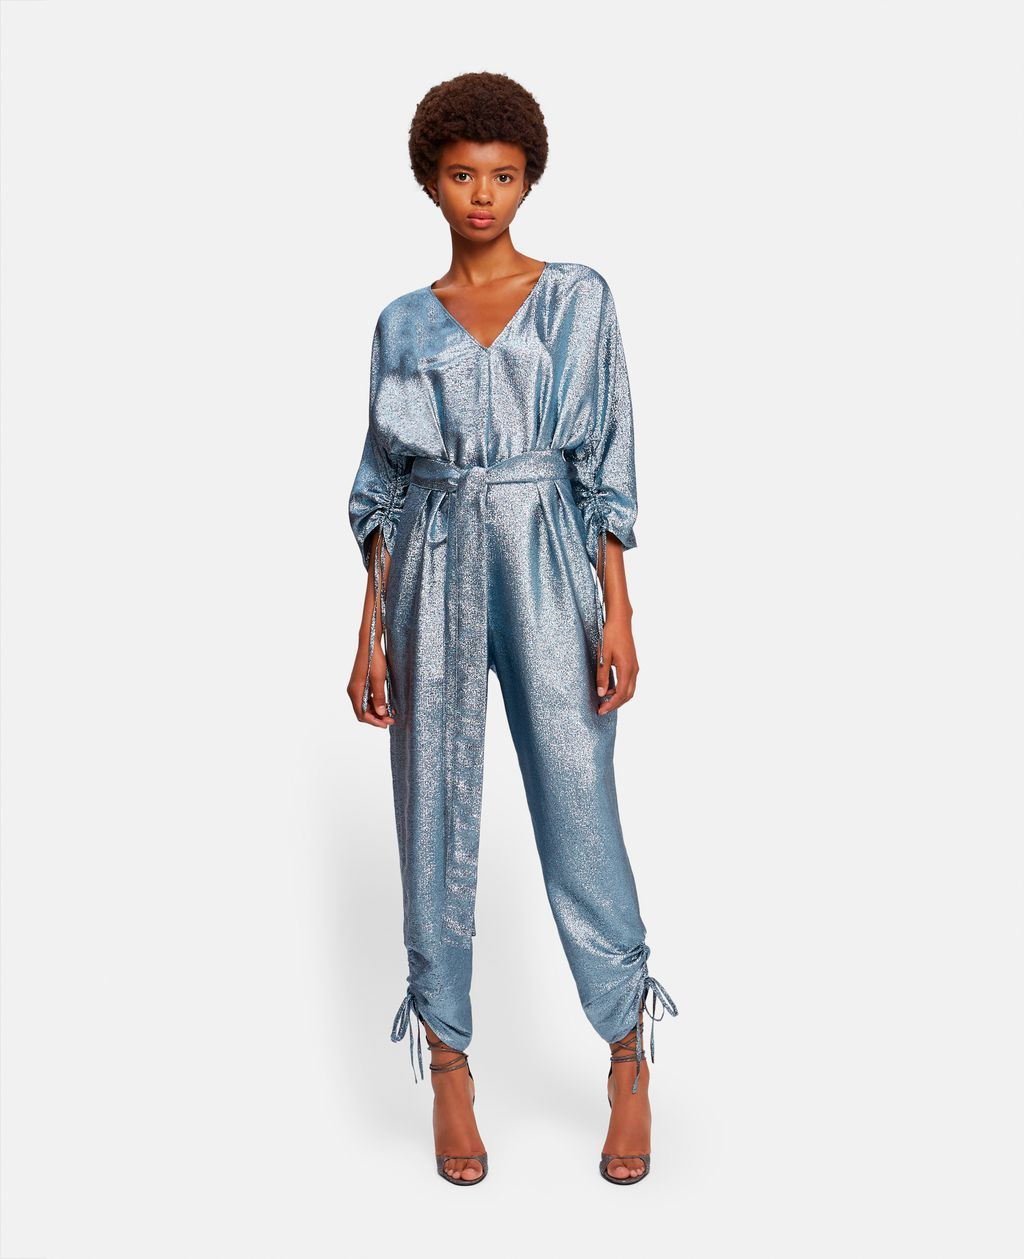 8ccb5d113eb2 House of Ollichon loves...Padma Lurex Jumpsuit - STELLA MCCARTNEY.  jumpsuit   relaxed  chilled